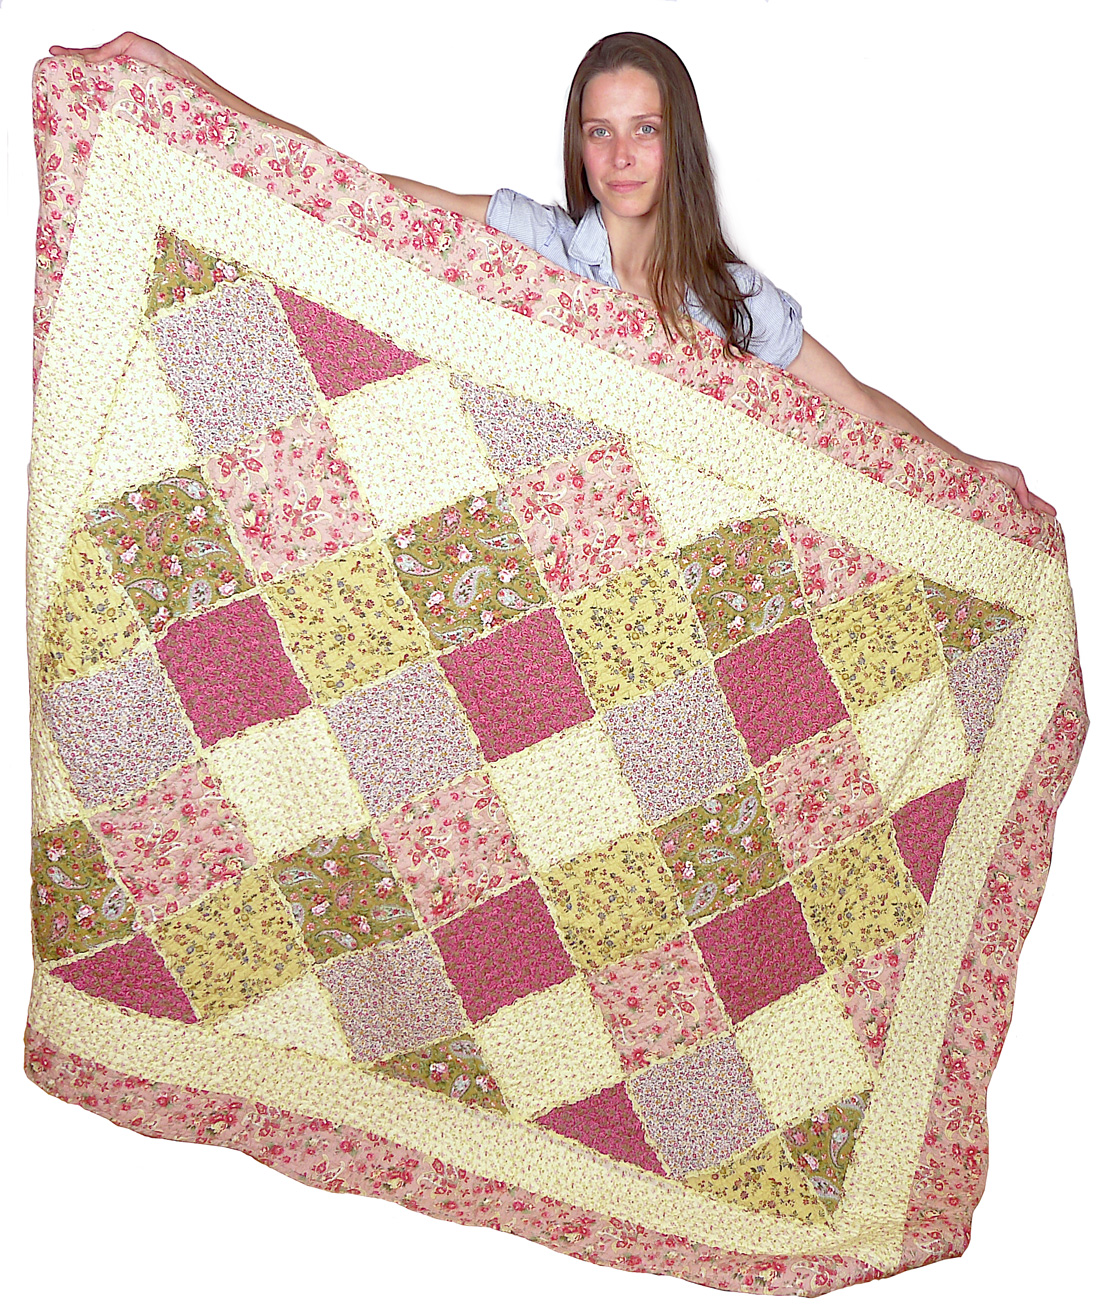 Image of Oversized Quilted Throw 55x70-Inch - Cream